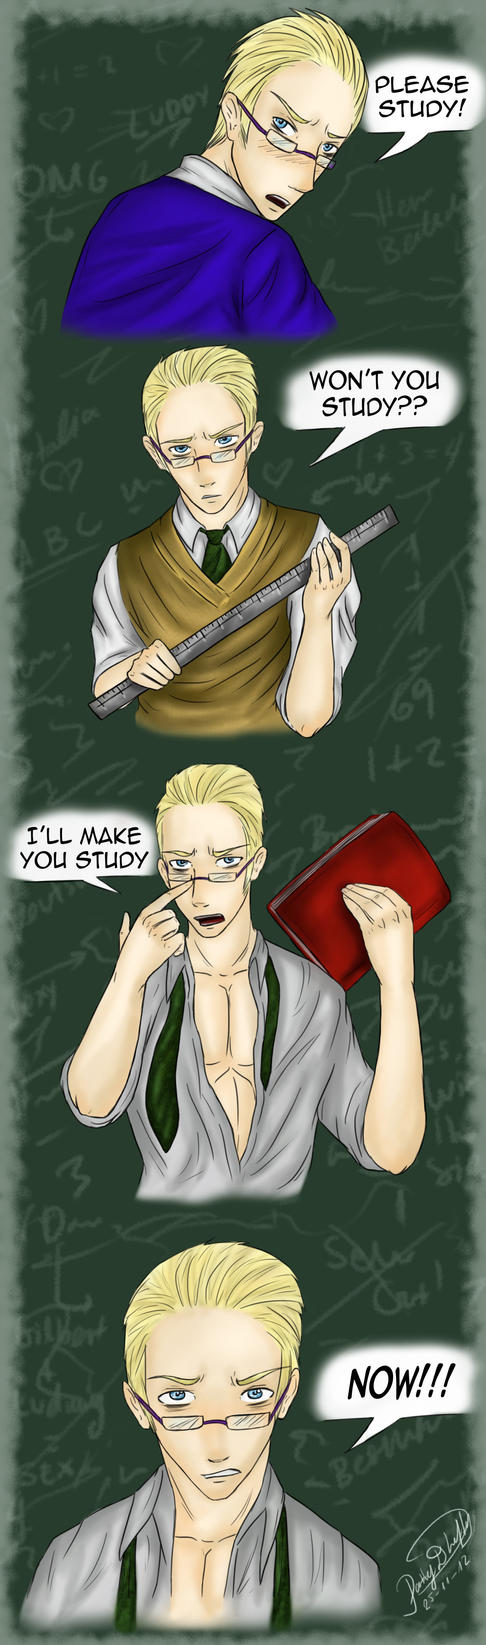 Herr Ludwig wants you to study! by patty110692